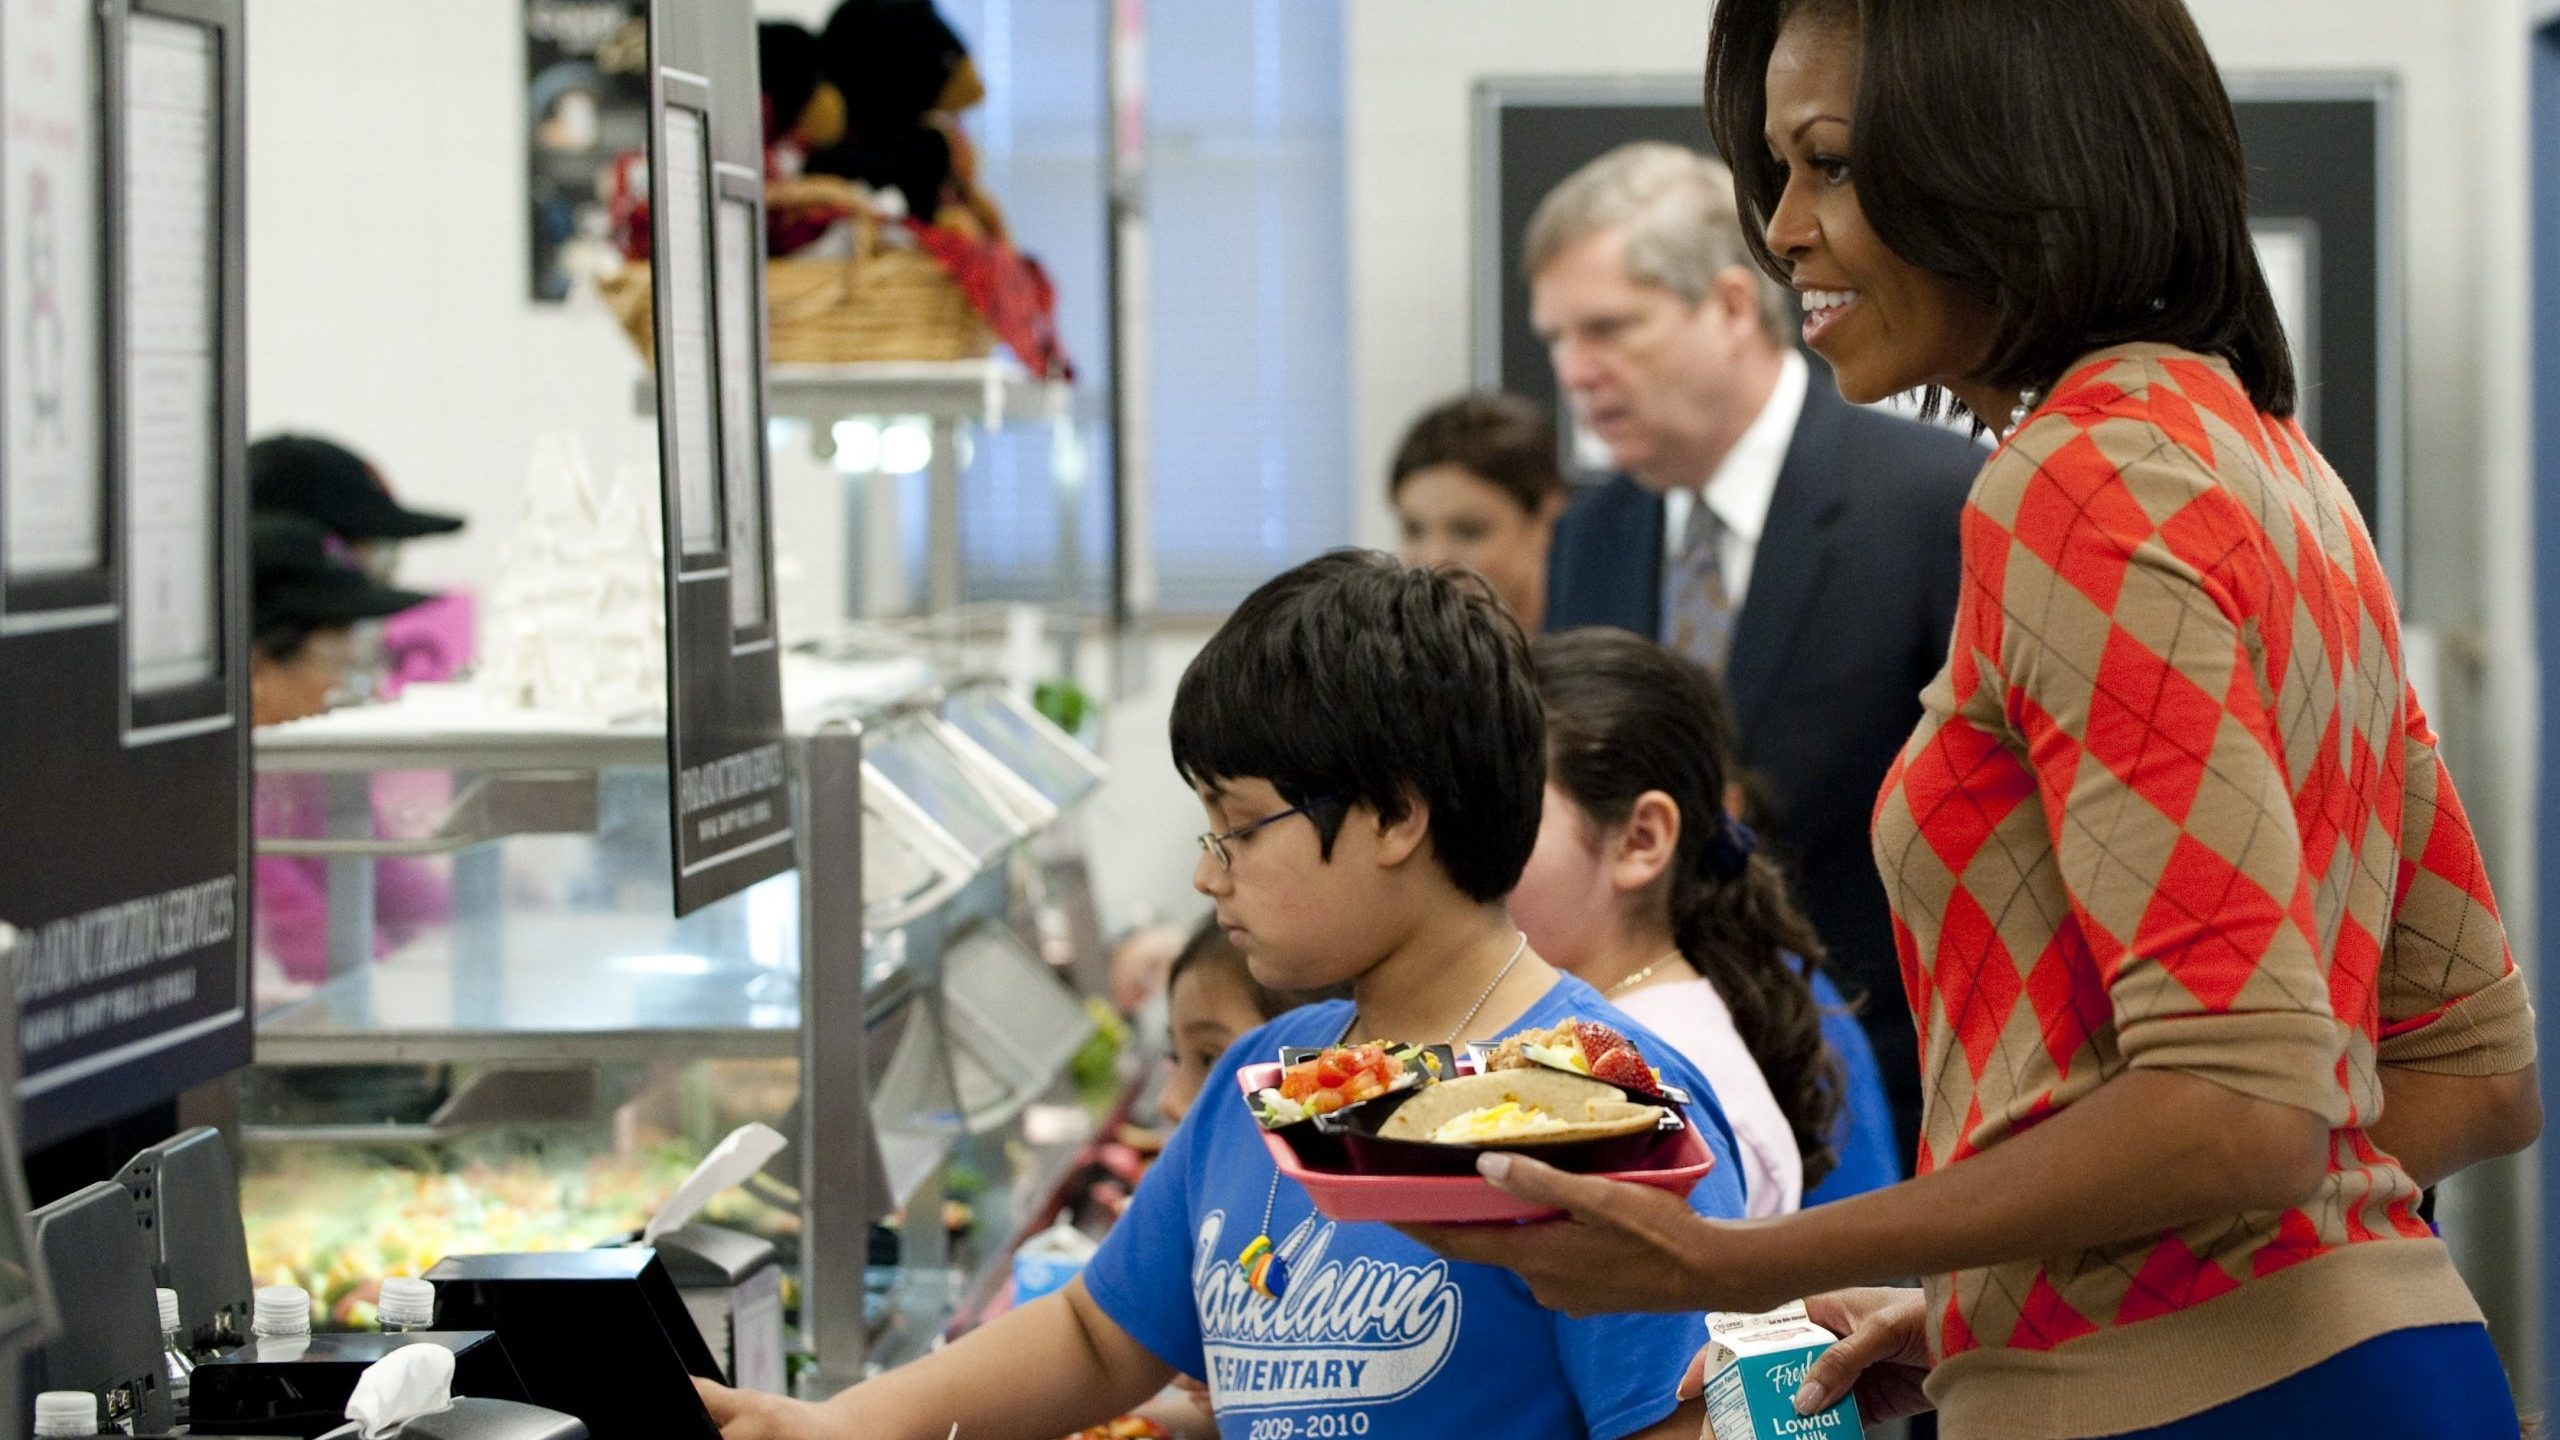 Michelle Obama holds a plate of food while walking down the school lunch line in the cafeteria at Parklawn Elementary School in Alexandria, Virginia, on Jan. 25, 2012. (Credit: SAUL LOEB/AFP via Getty Images)